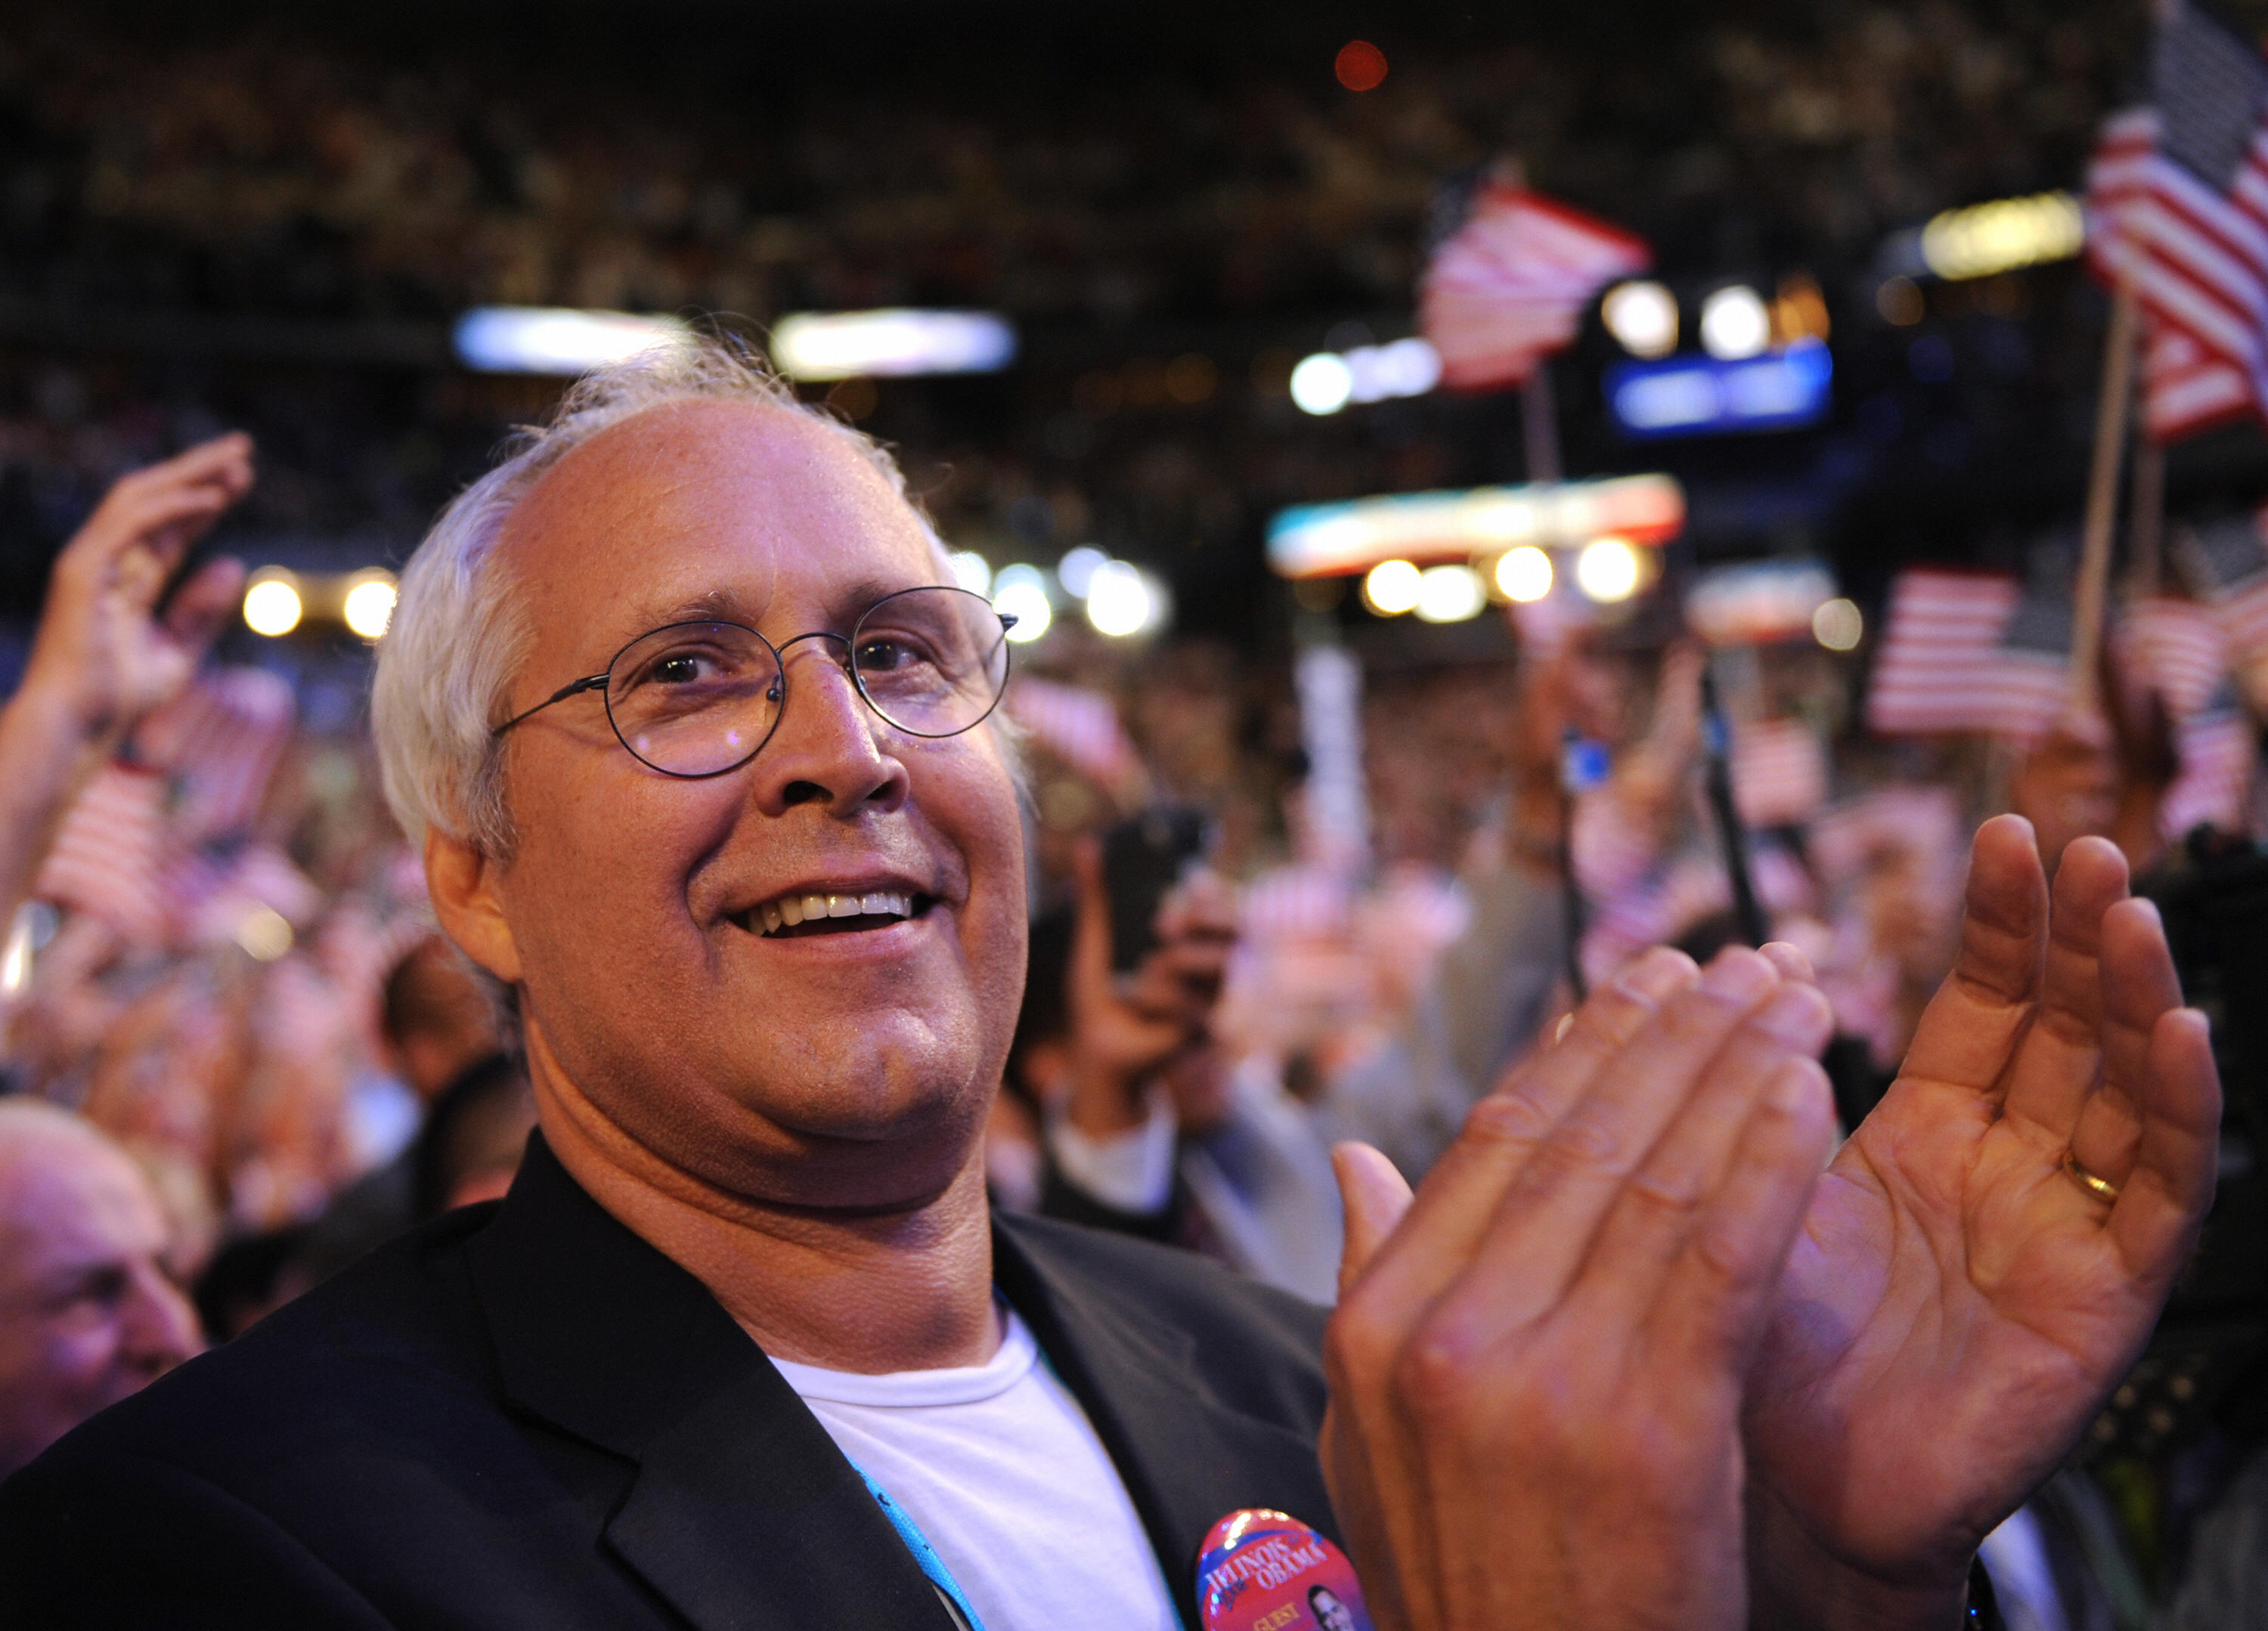 Chevy Chase is clapping while in an audience.